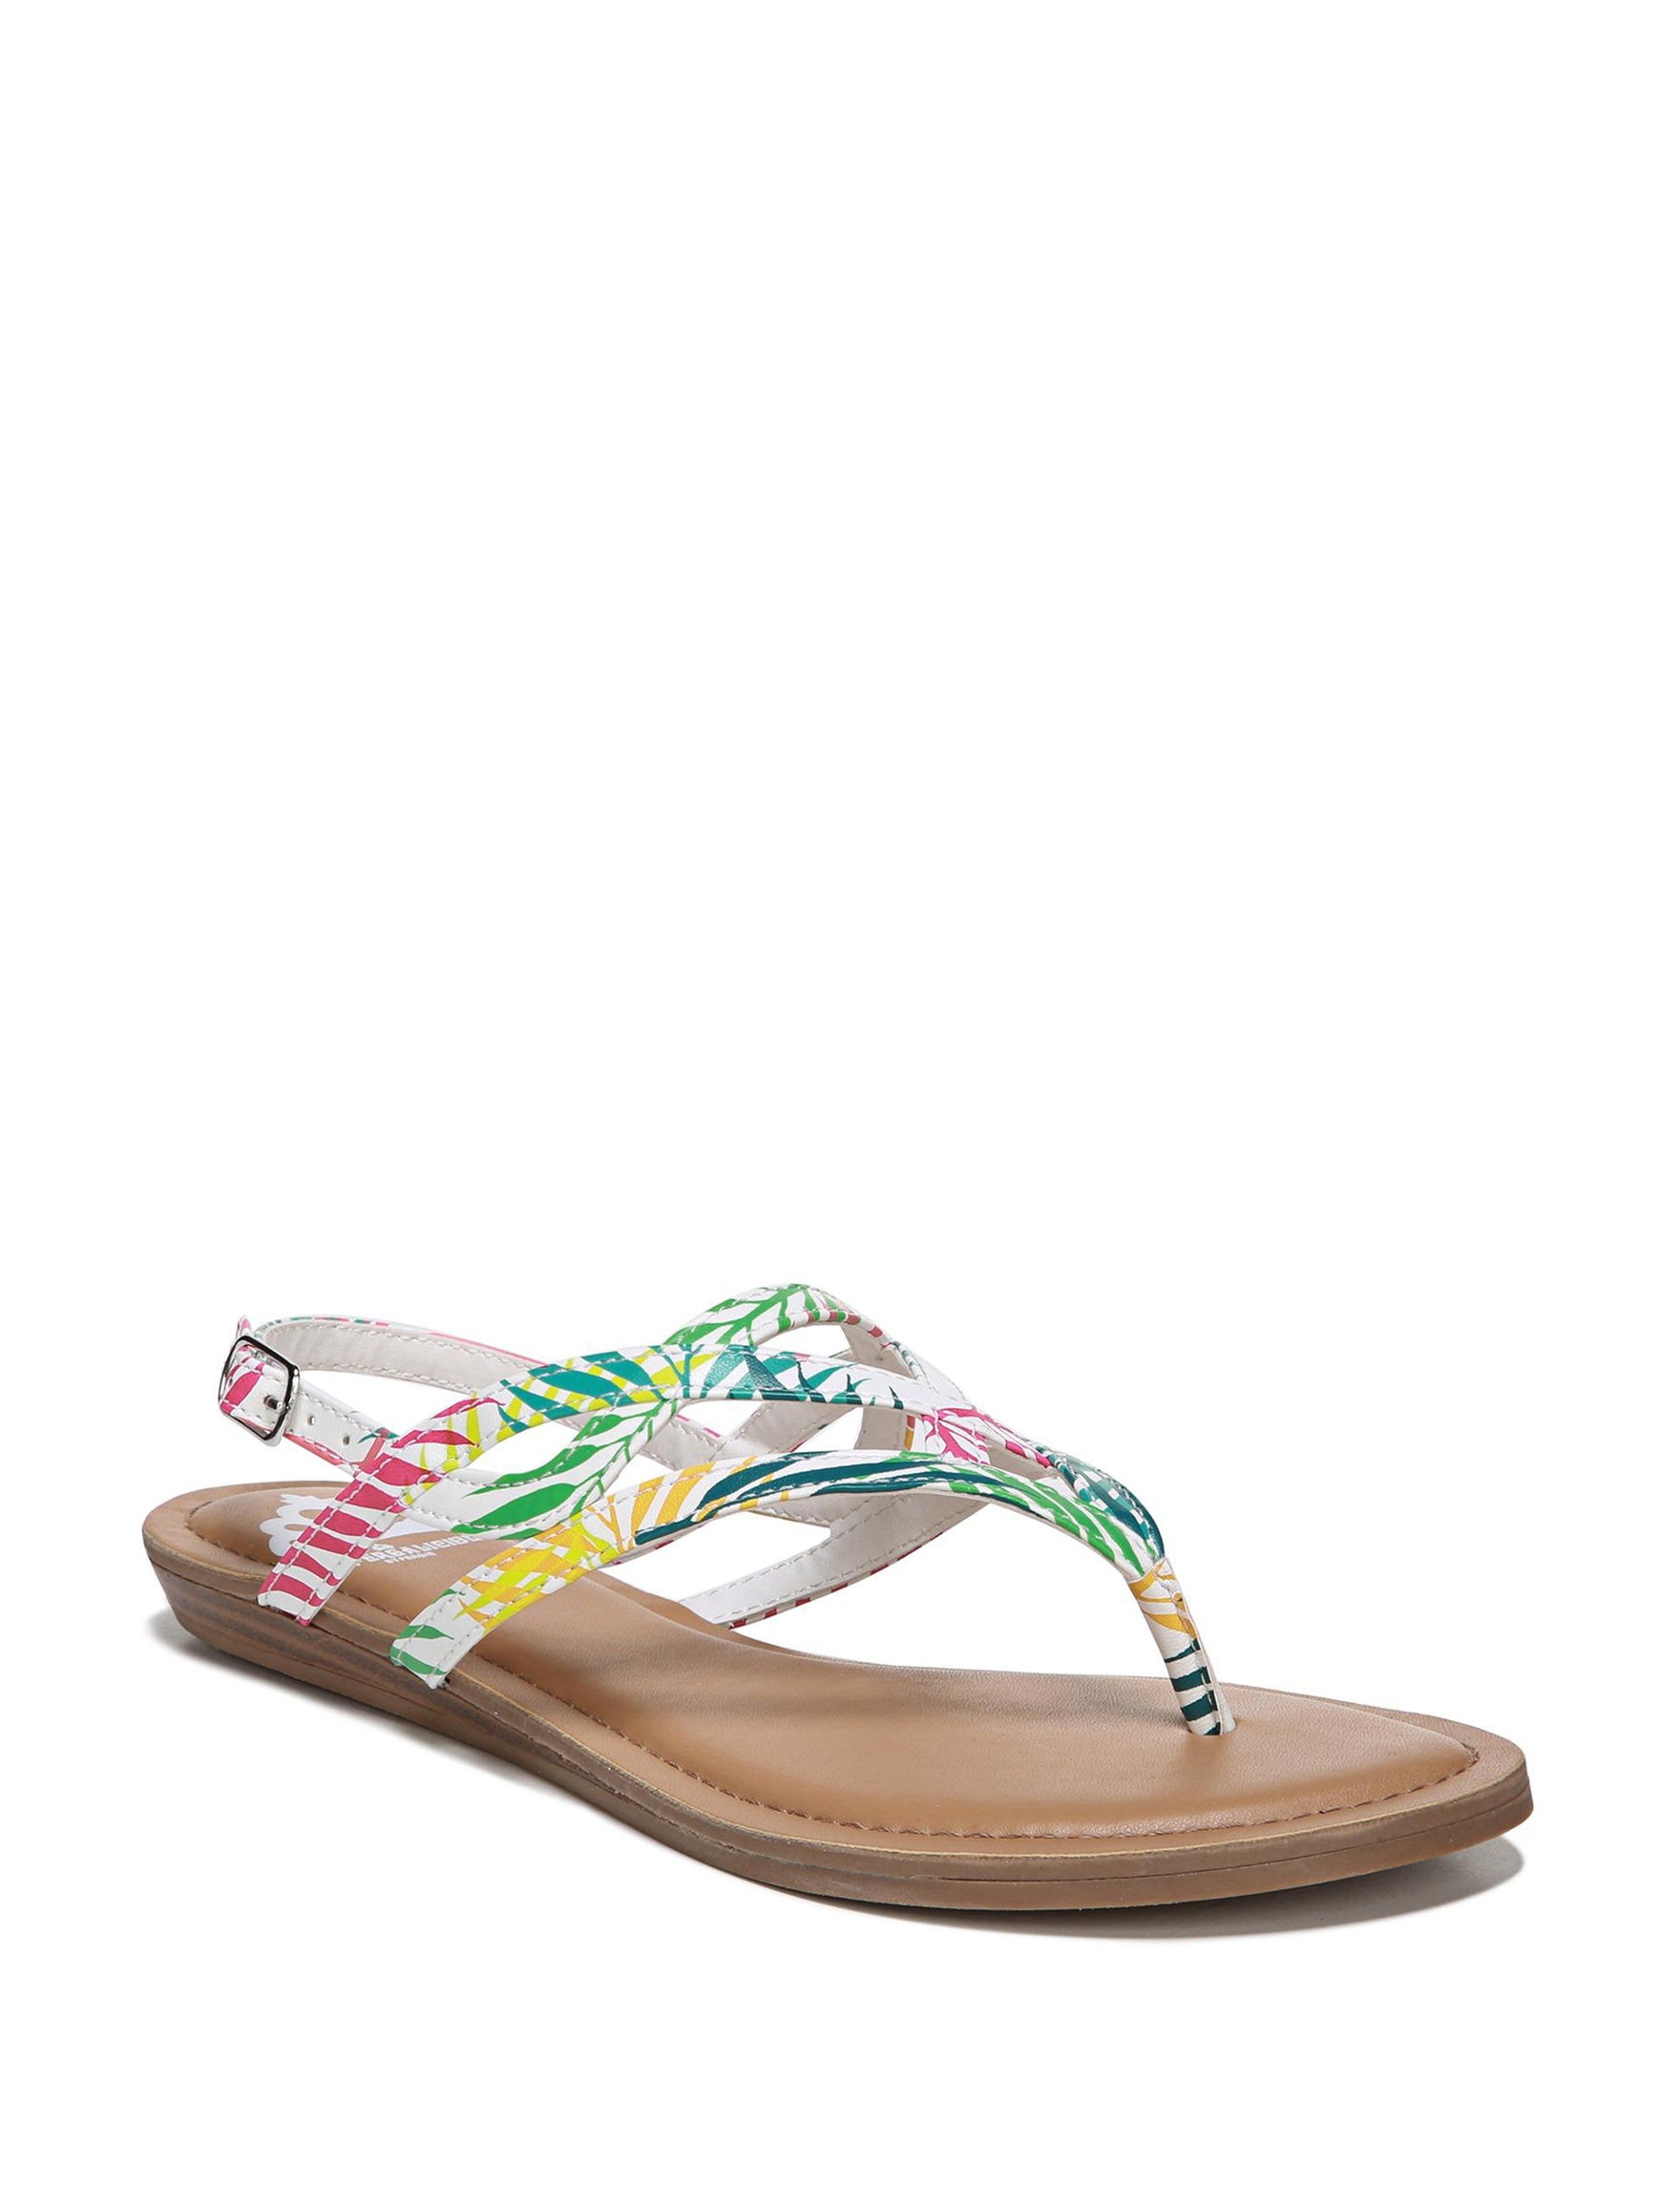 Fergalicious by Fergie White Multi Flat Sandals